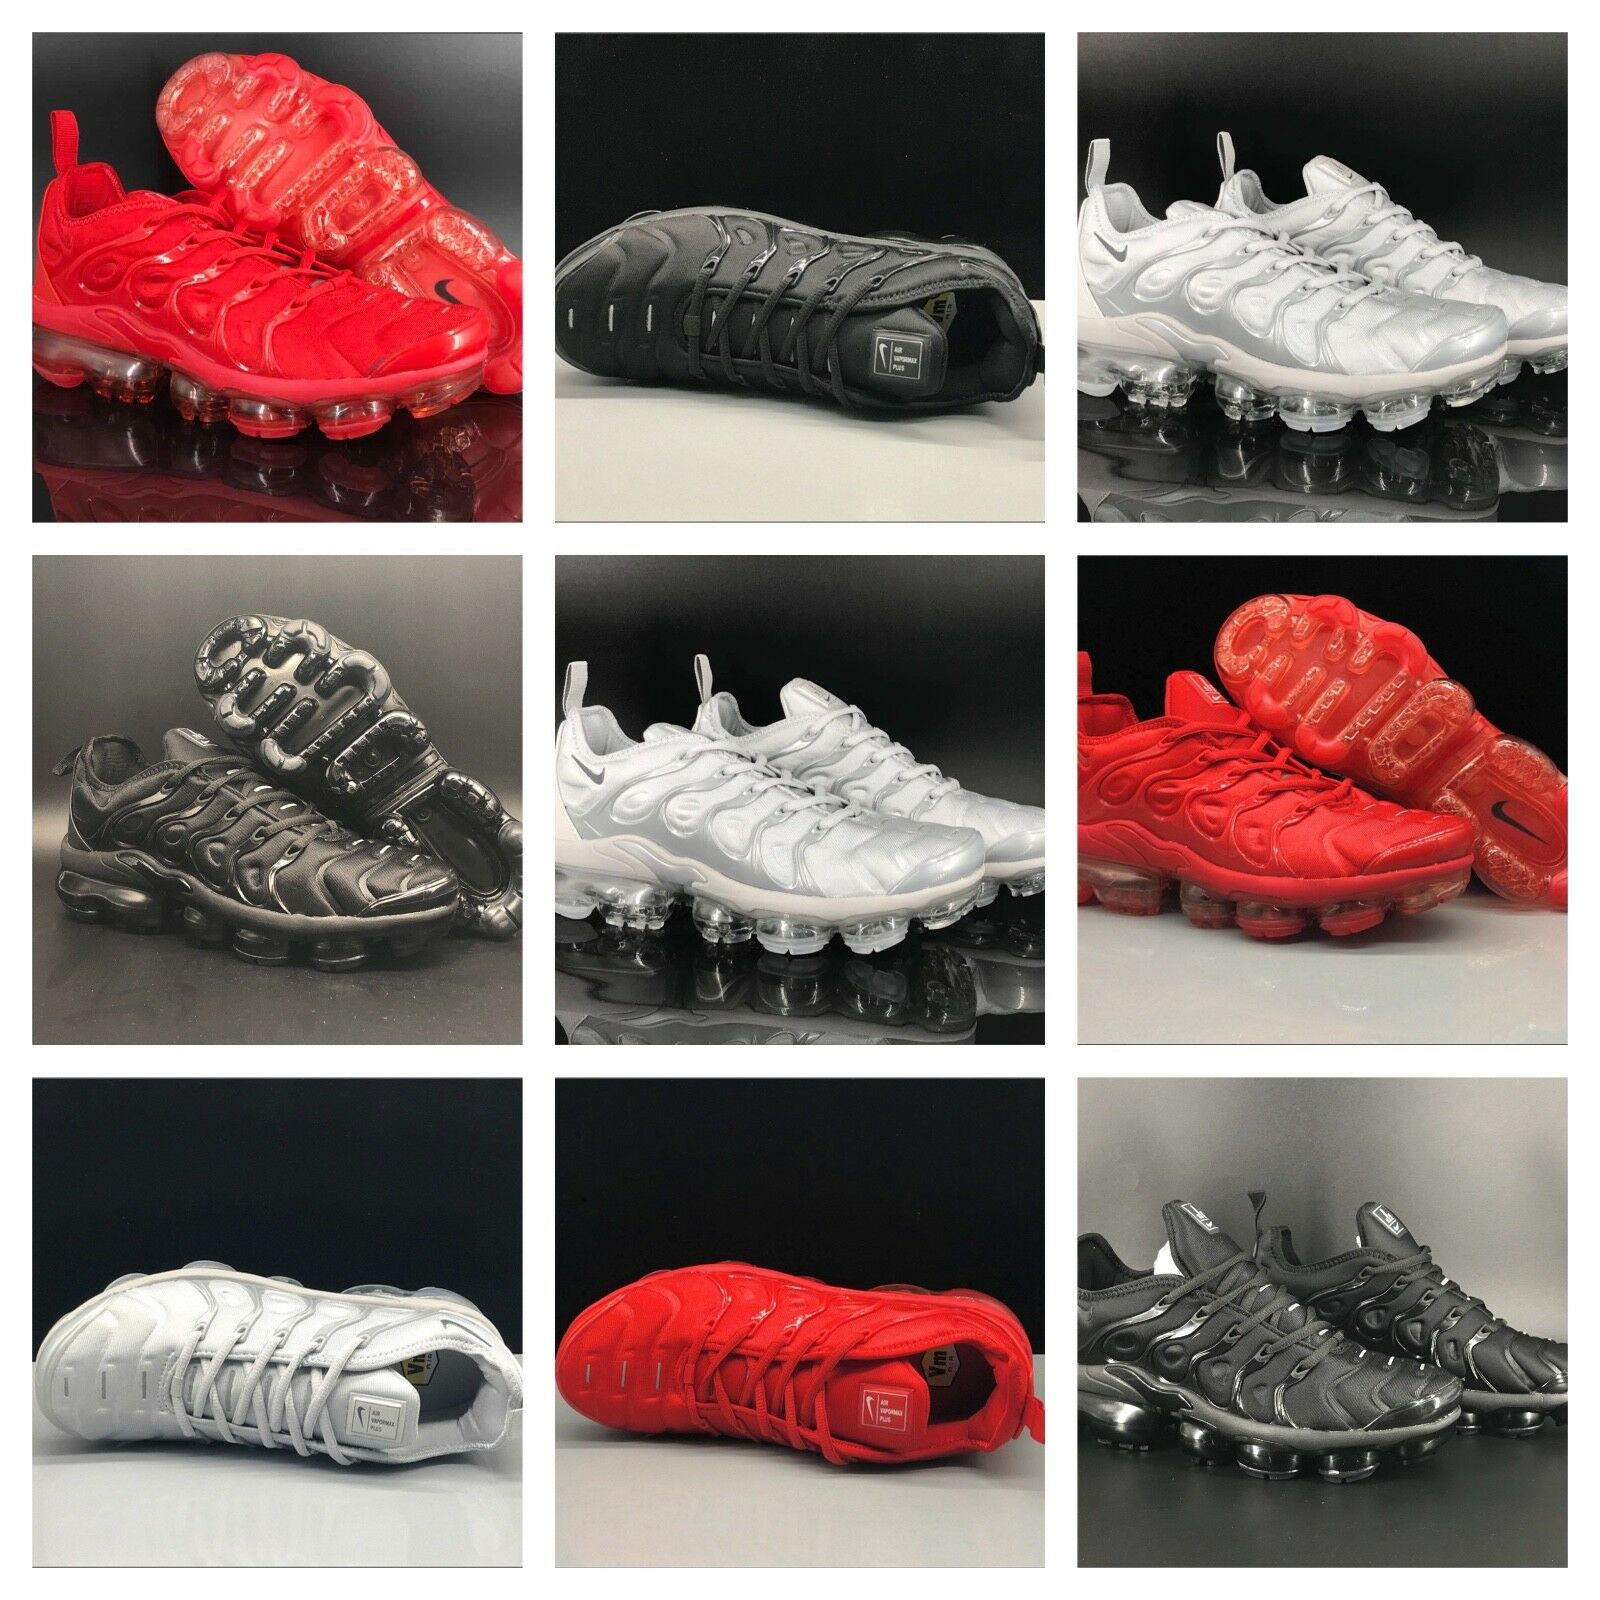 NIKE 2018 TN Air Vapormax Plus | Black, Light Grey & Red |  best-selling model of the brand